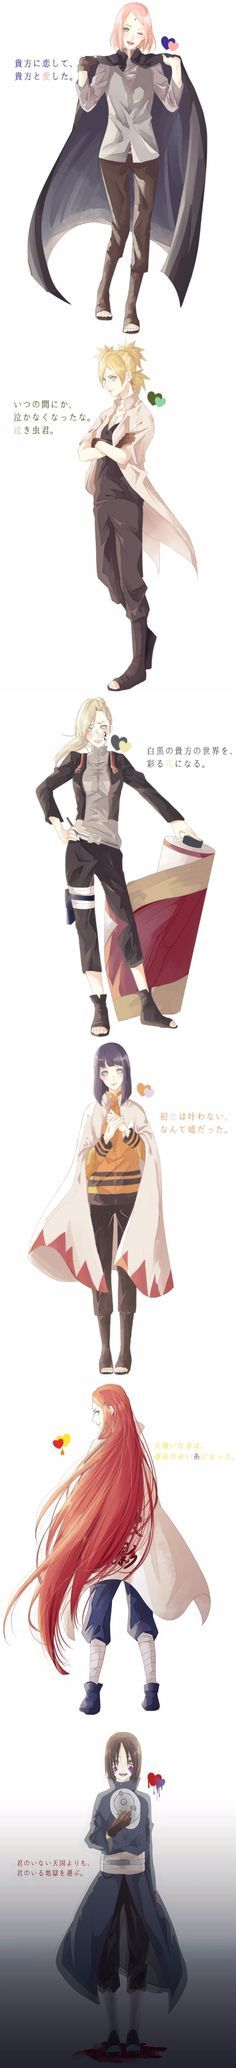 "The girls in their man's clothes.  A while back I pinned the NaruHina one, but then I found SasuSaku, ShikaTema, SaiIno, MinaKushi, and ObiRin ones and had to add them! <a class=""pintag"" href=""/explore/naruto/"" title=""#naruto explore Pinterest"">#naruto</a>"